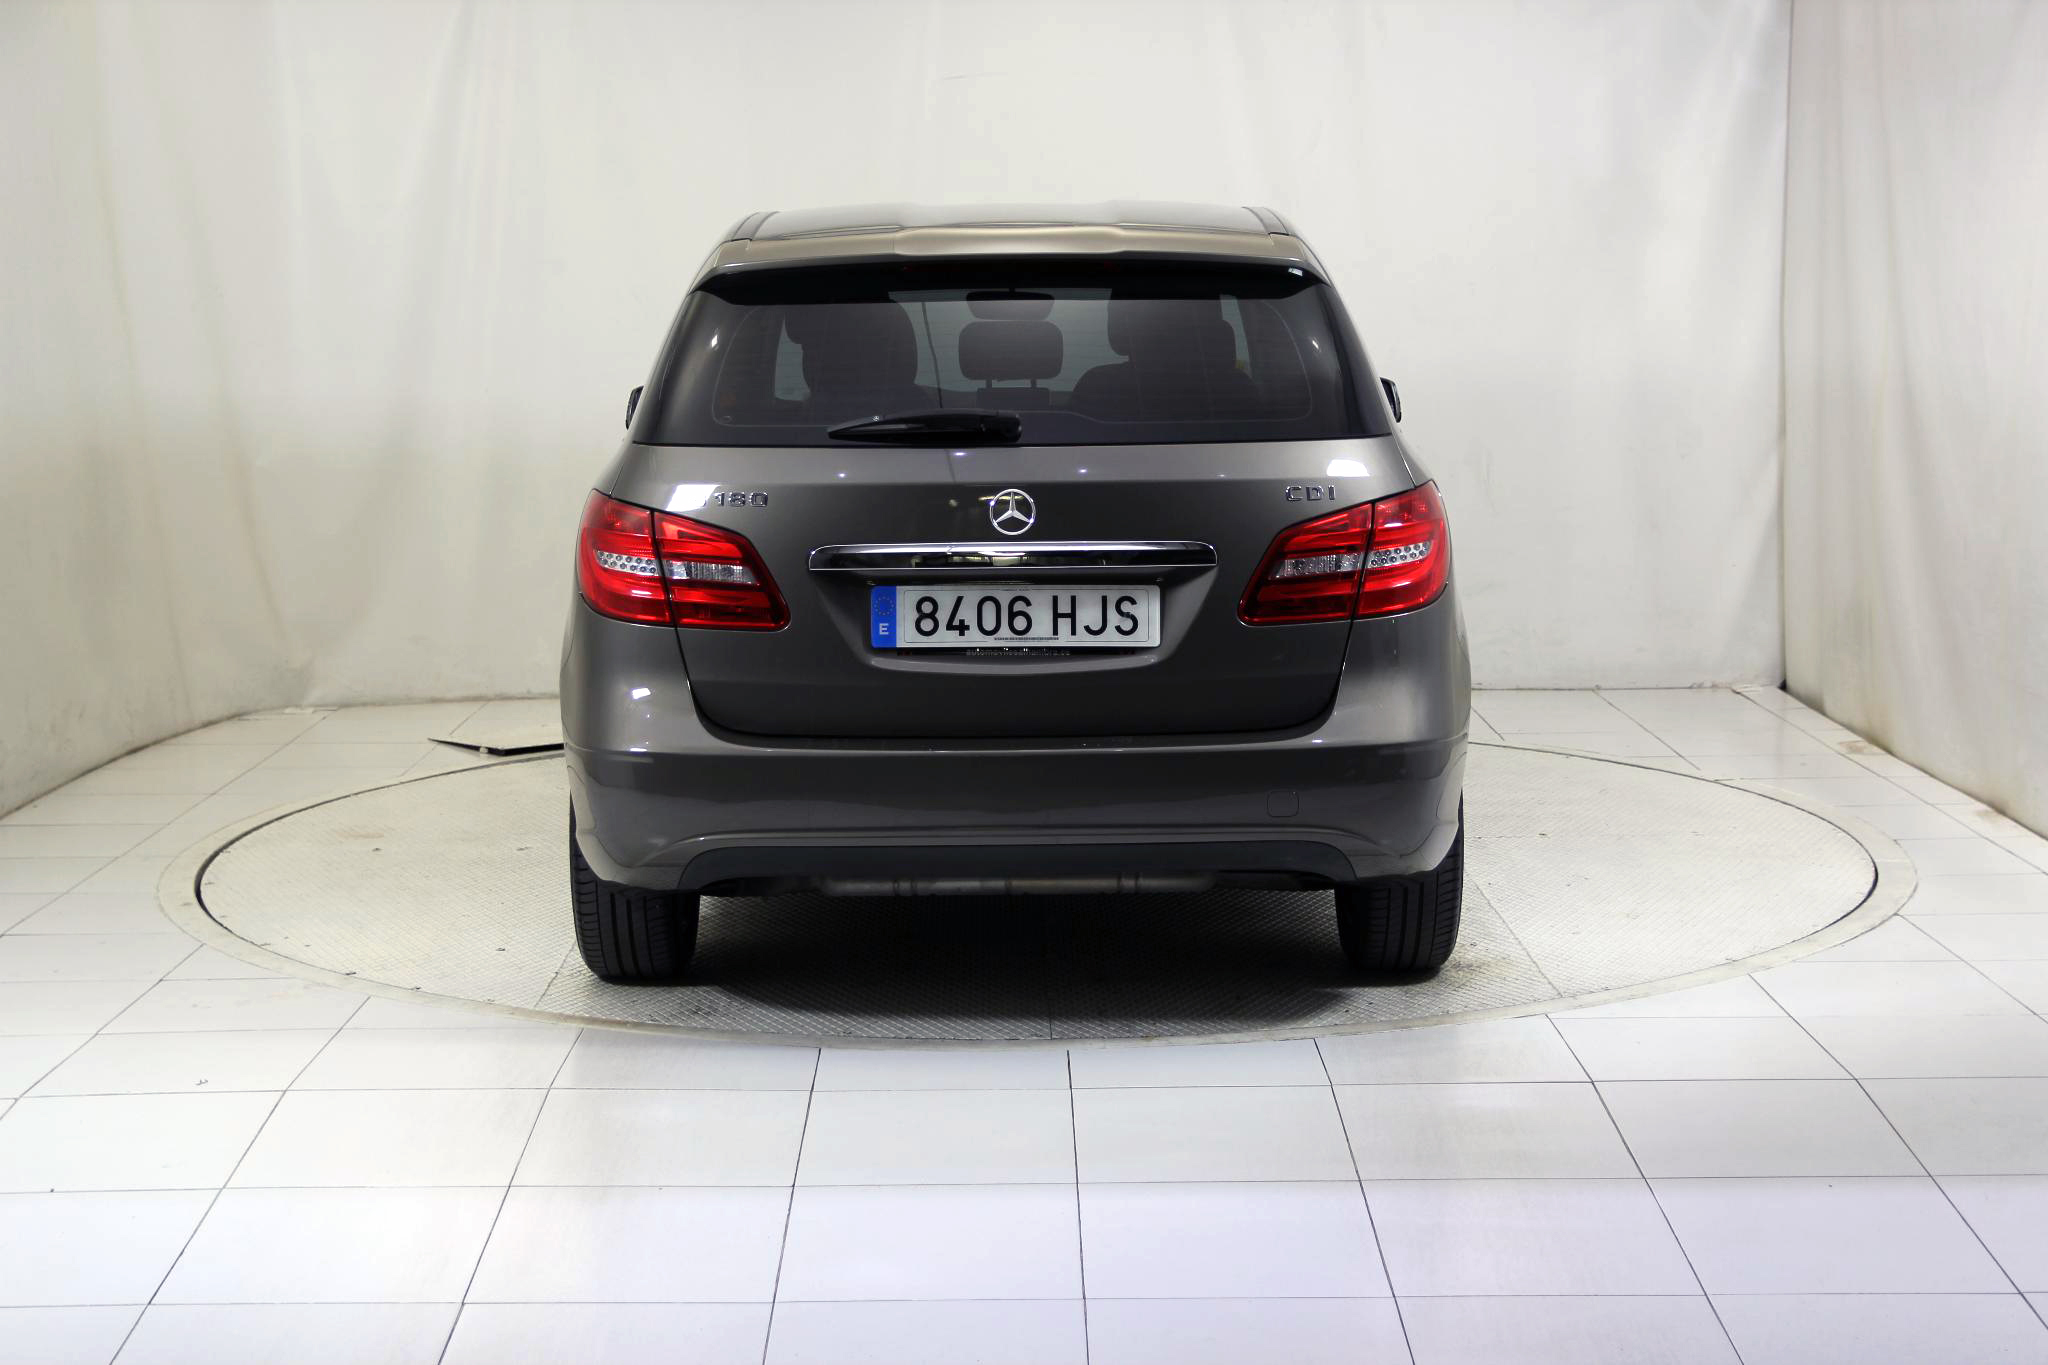 Mercedes-Benz Clase B CLASE B 180 CDI BLUE EFFICIENCY 5P imagen 7